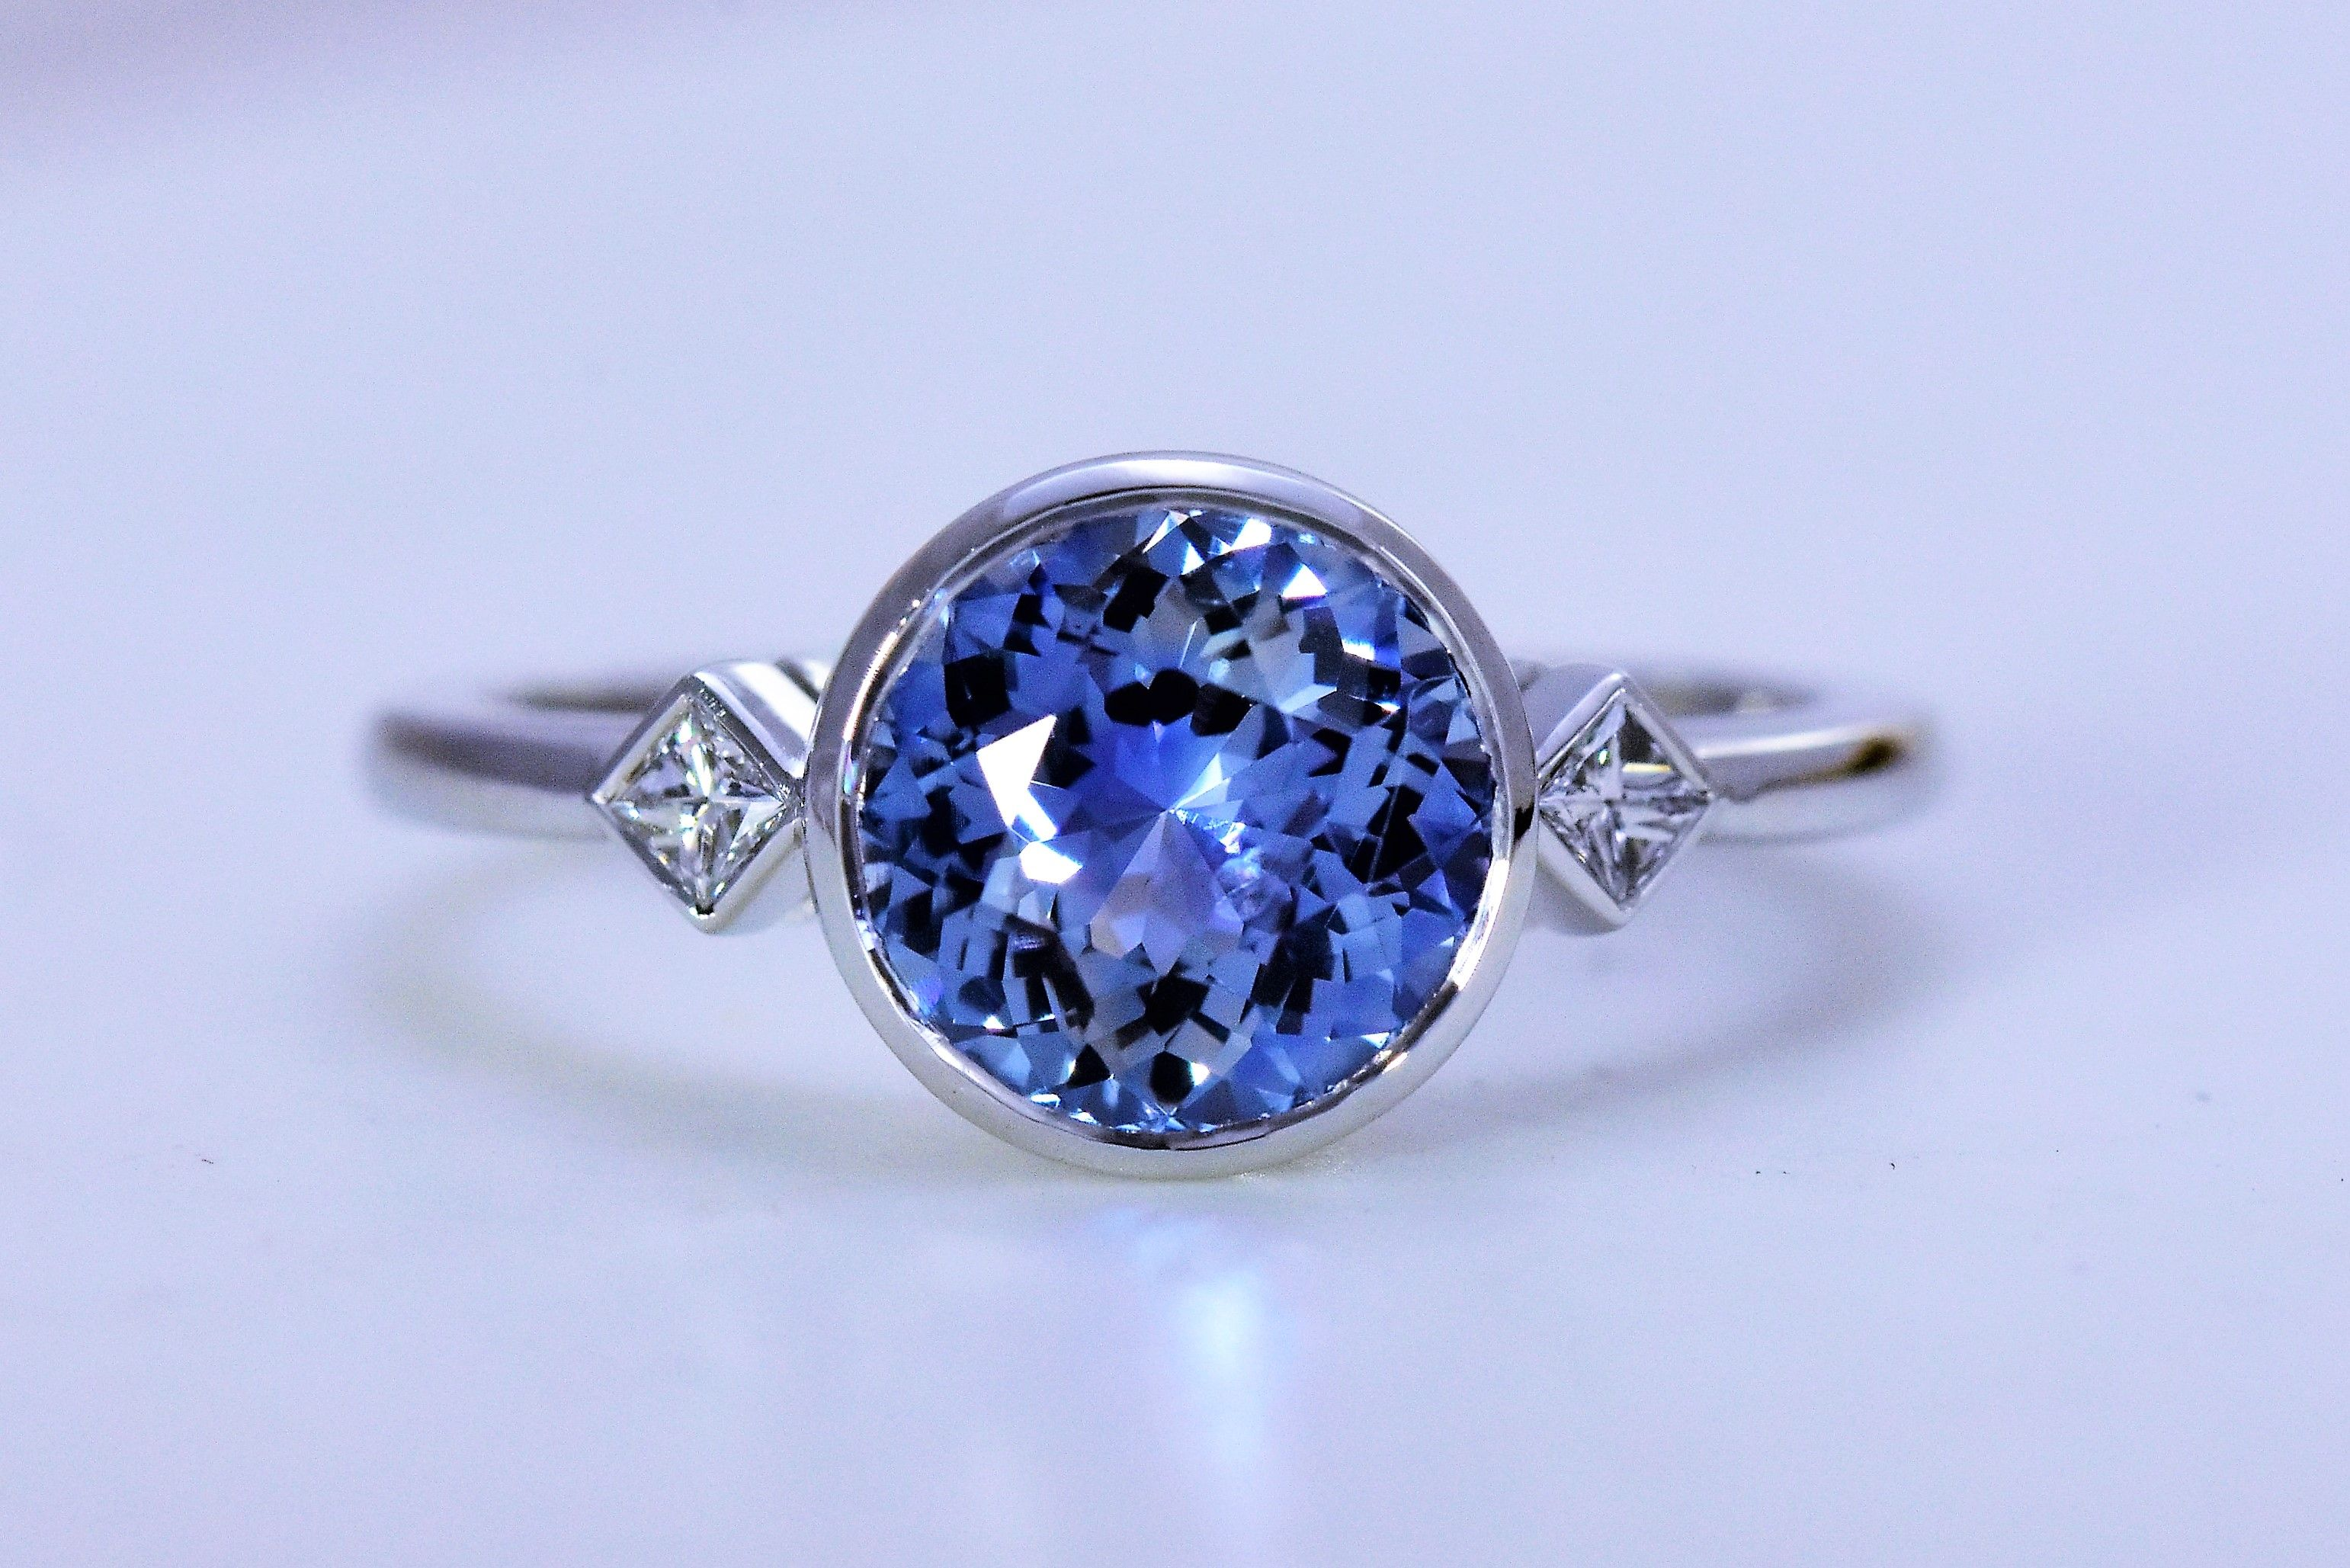 We Love This Gorgeous Sapphire And Diamond Three Stone Ring Unique Engagement Rings Rock Jewelry Stone Engagement Rings